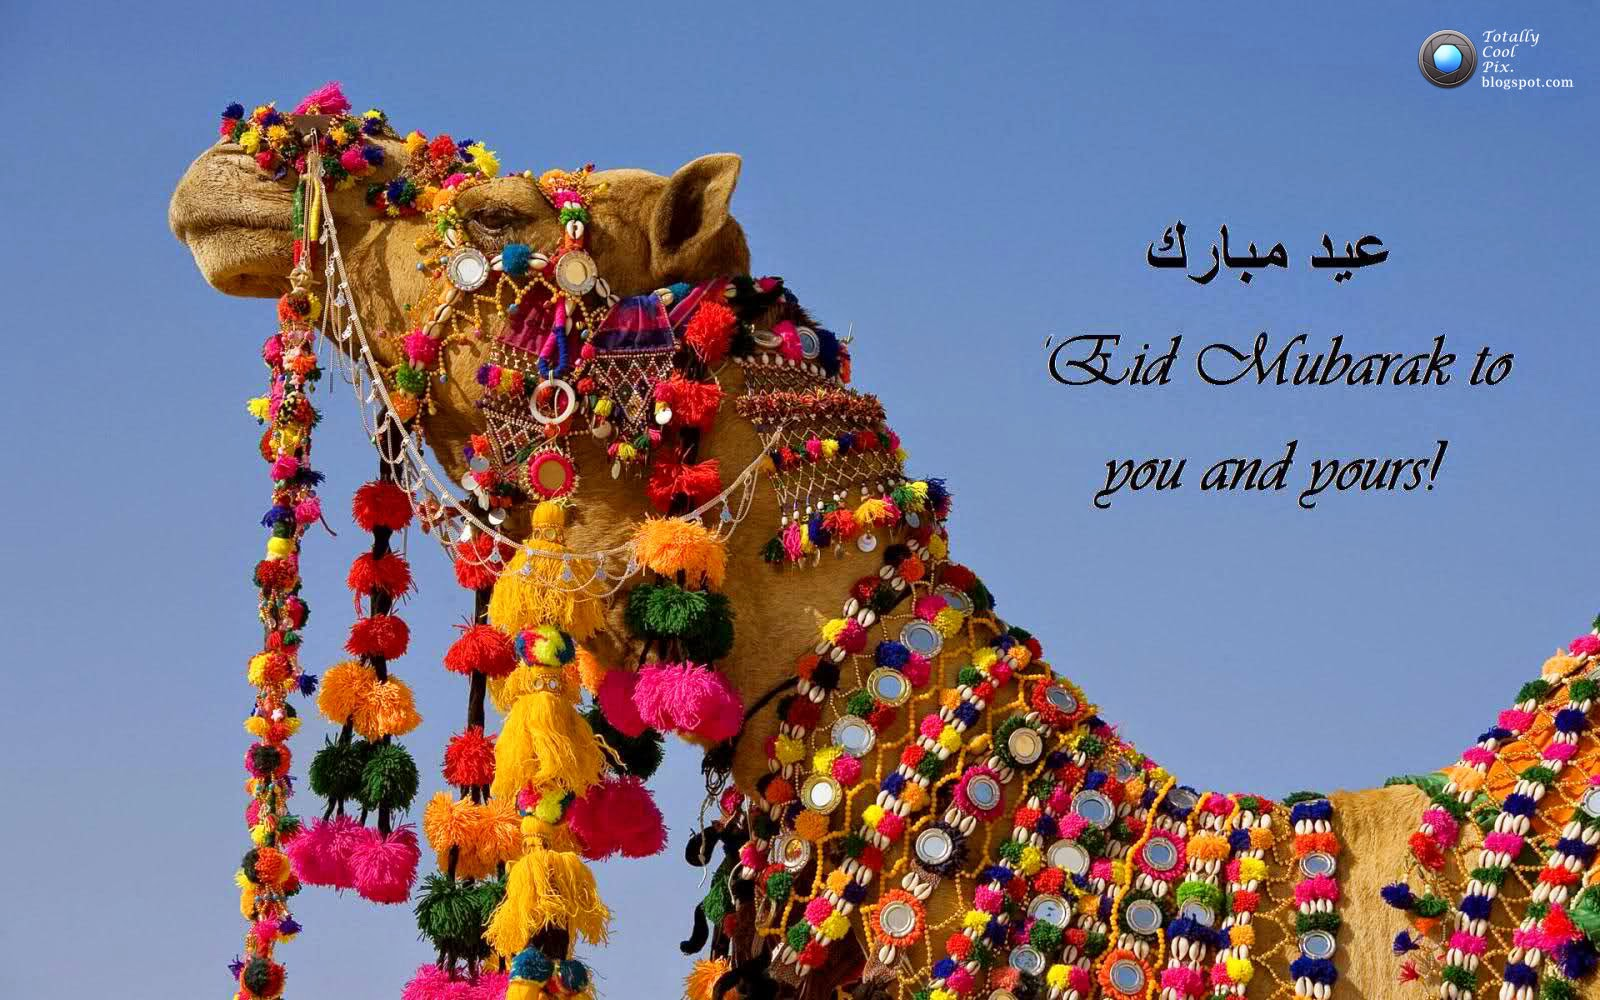 All Wishes Message Greeting Card And Tex Message Eid Ul Adha